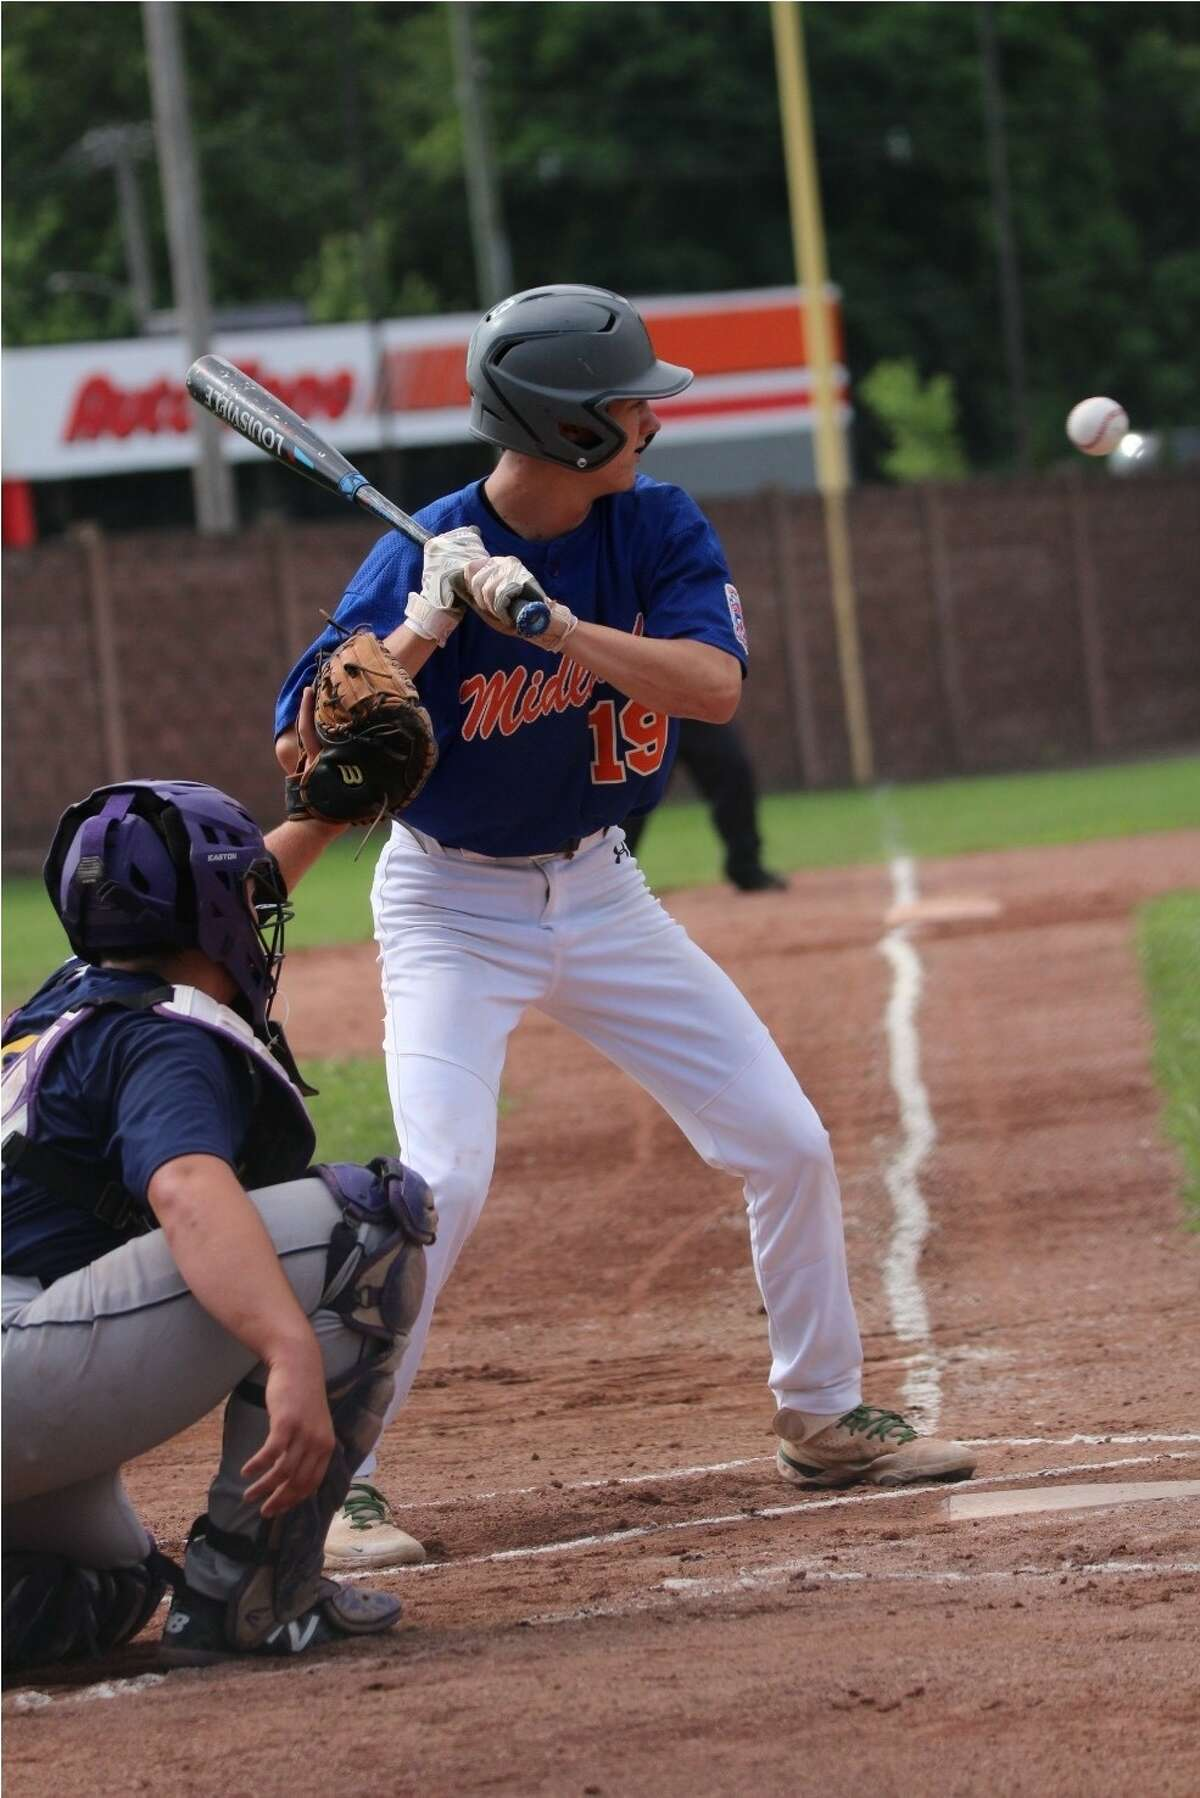 Midland's Zack Parker digs in during Saturday's Senior League Baseball state tournament winners' bracket final against Blissfield in Niles.